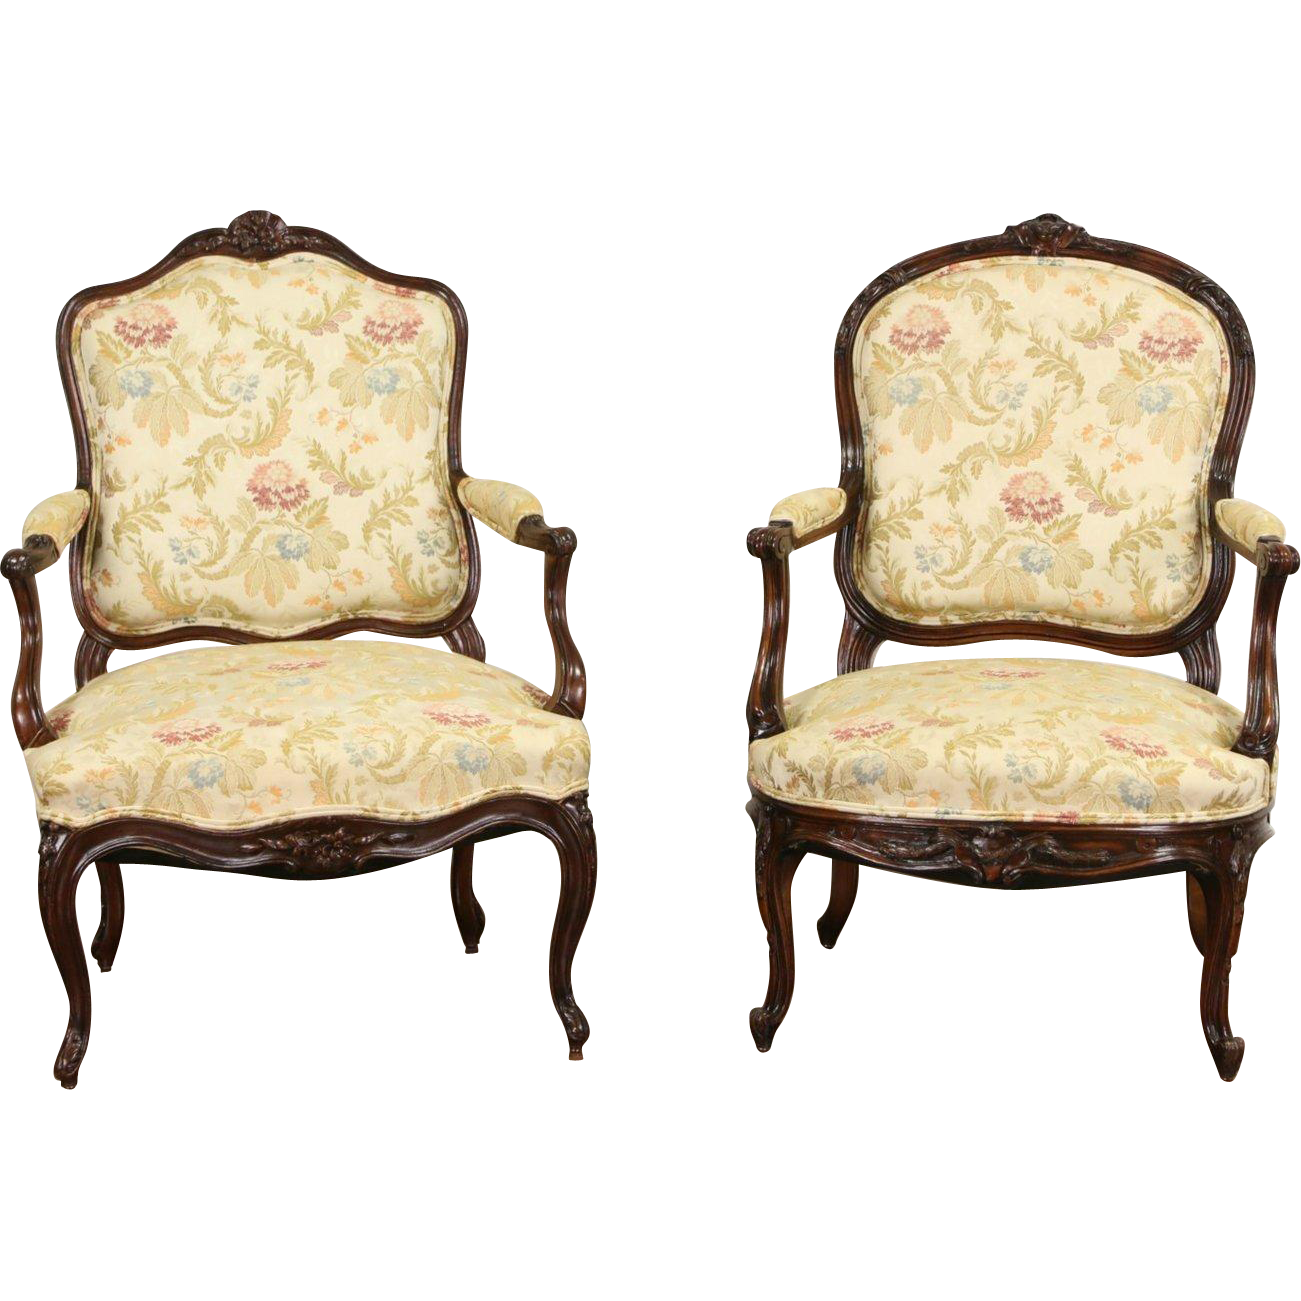 Pair of Similar French 1900 Antique Hand Carved Walnut Chairs